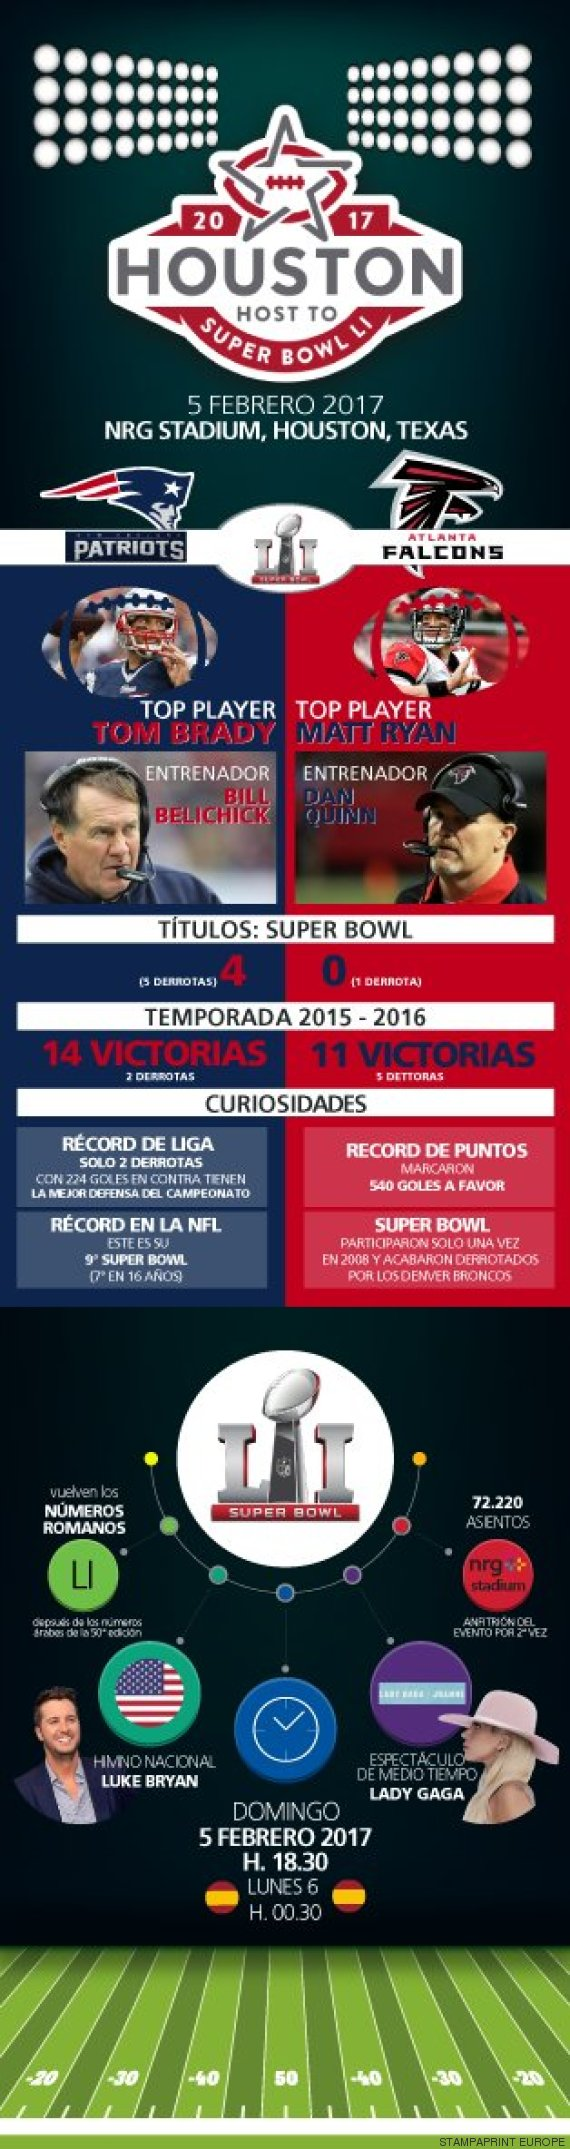 infografia superbowl